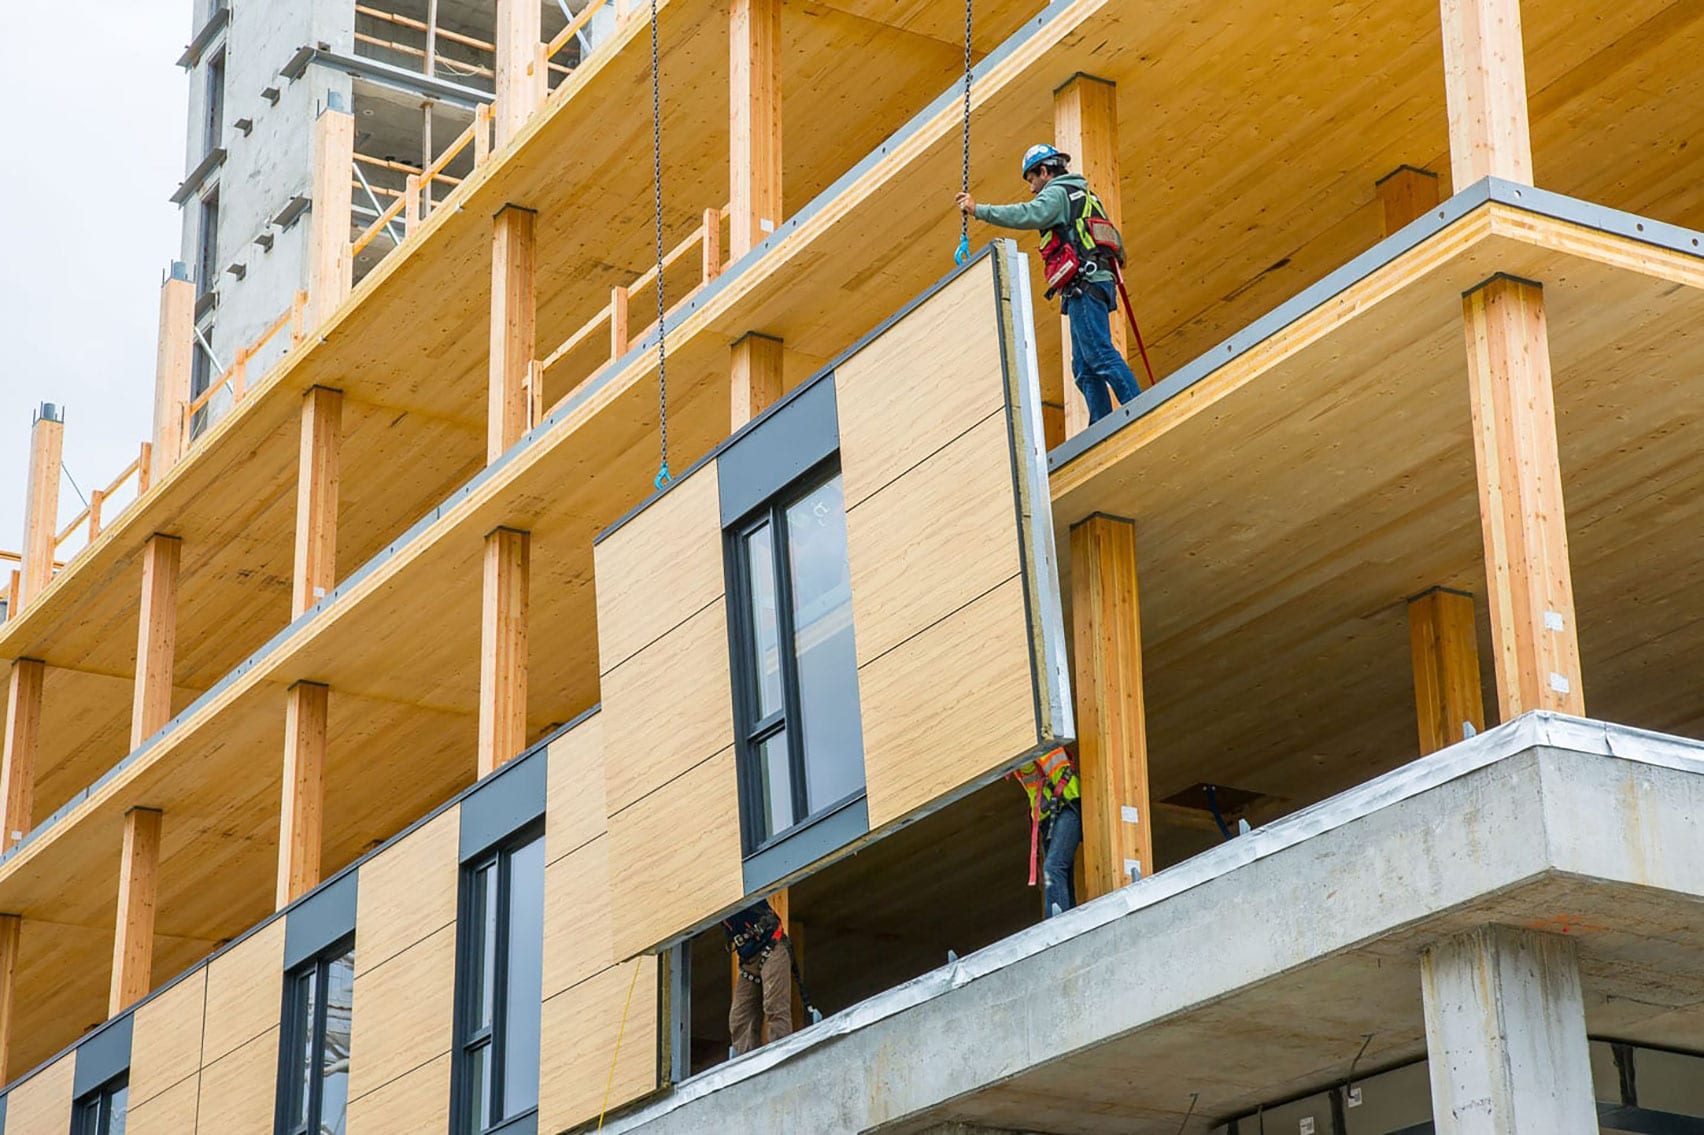 Construction of Brock Commons Tallwood House by Acton Ostry Architects